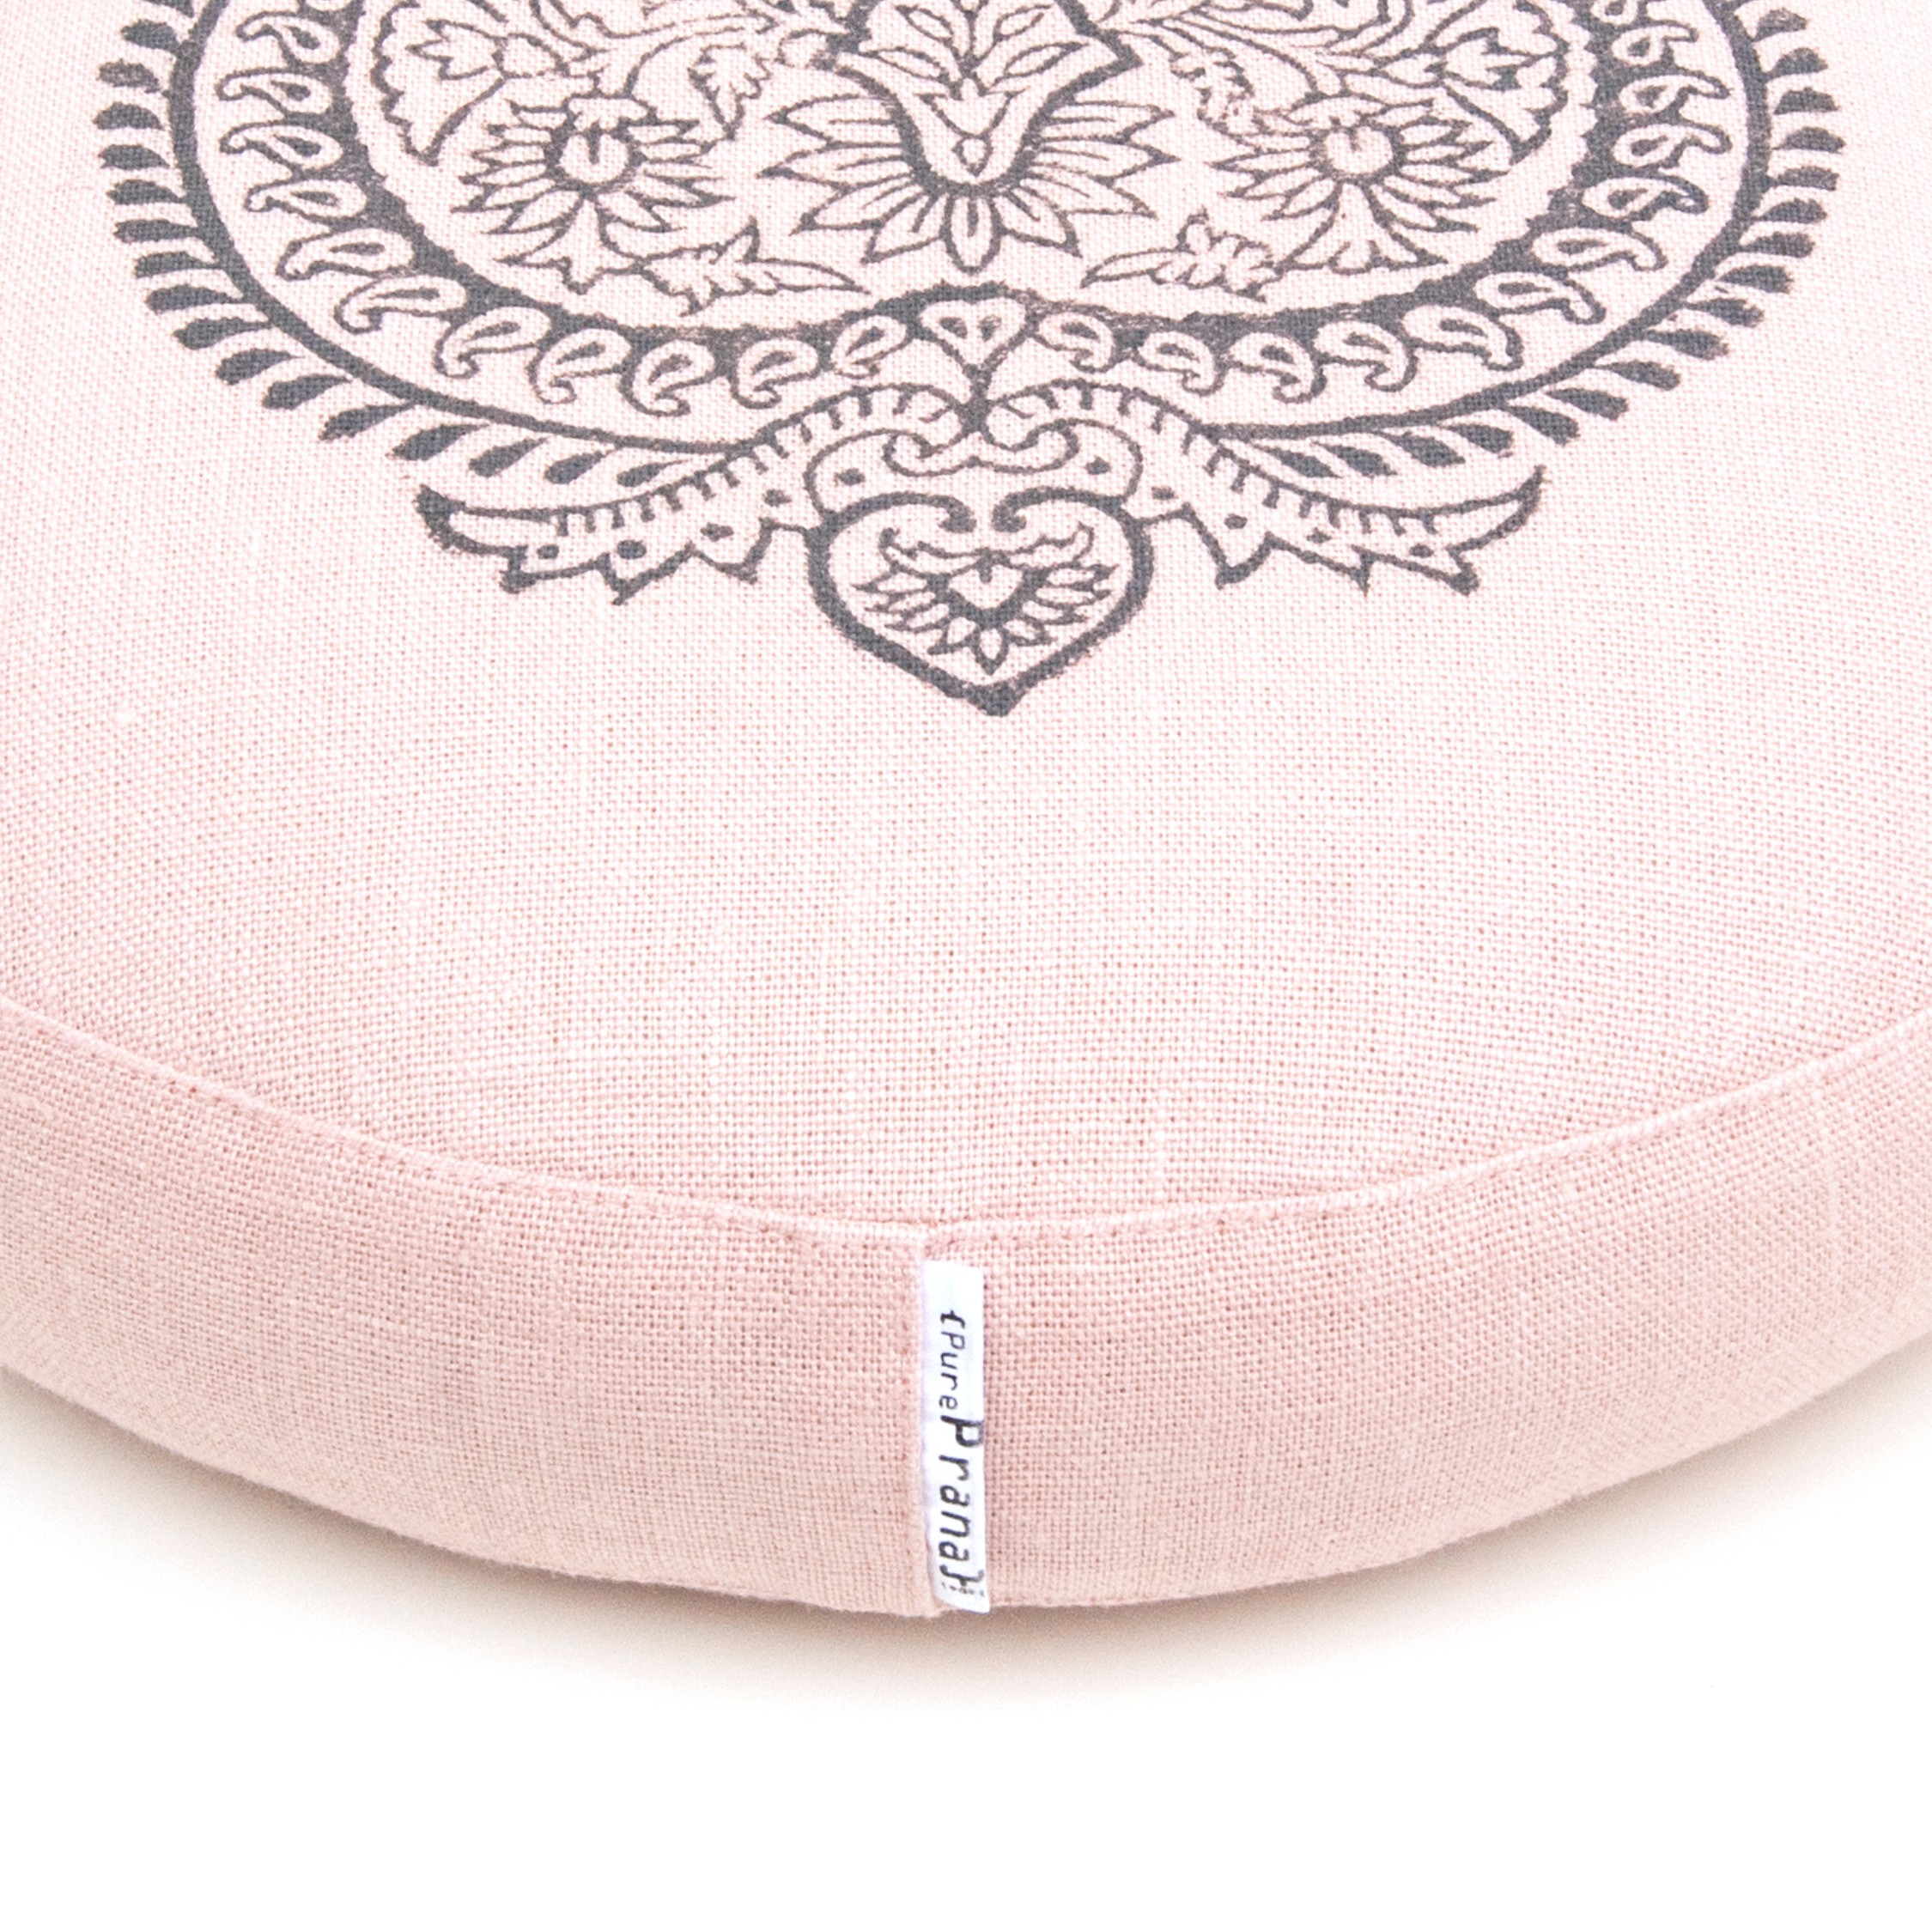 An extra low meditation cushion by Pure Prana Label